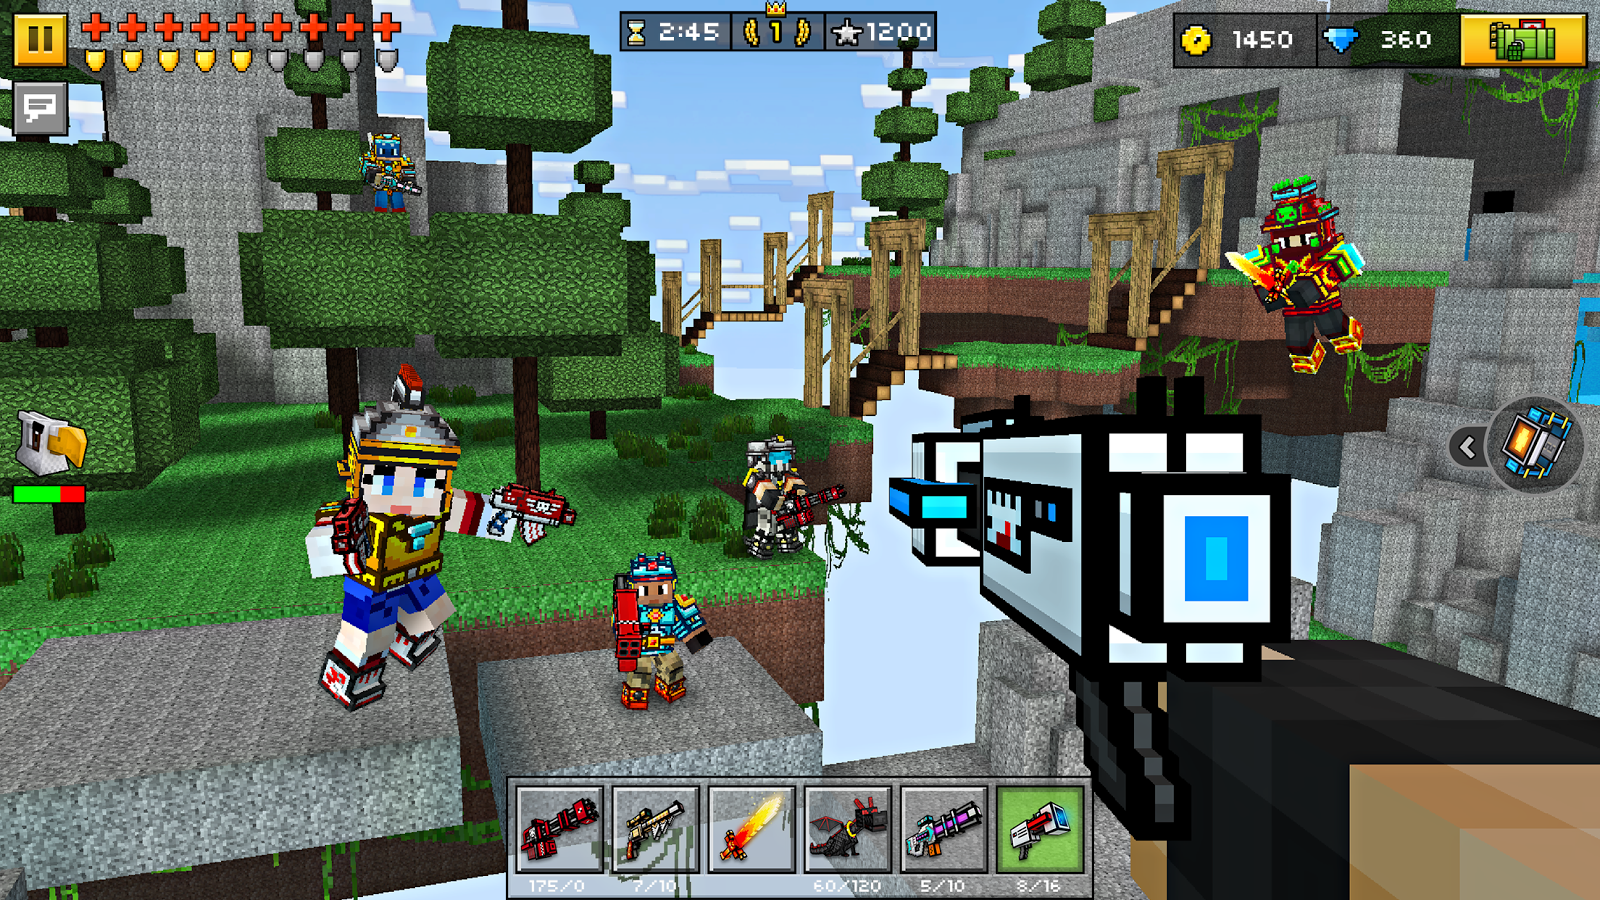 Pixel Gun 3D (Pocket Edition) Screenshot 10